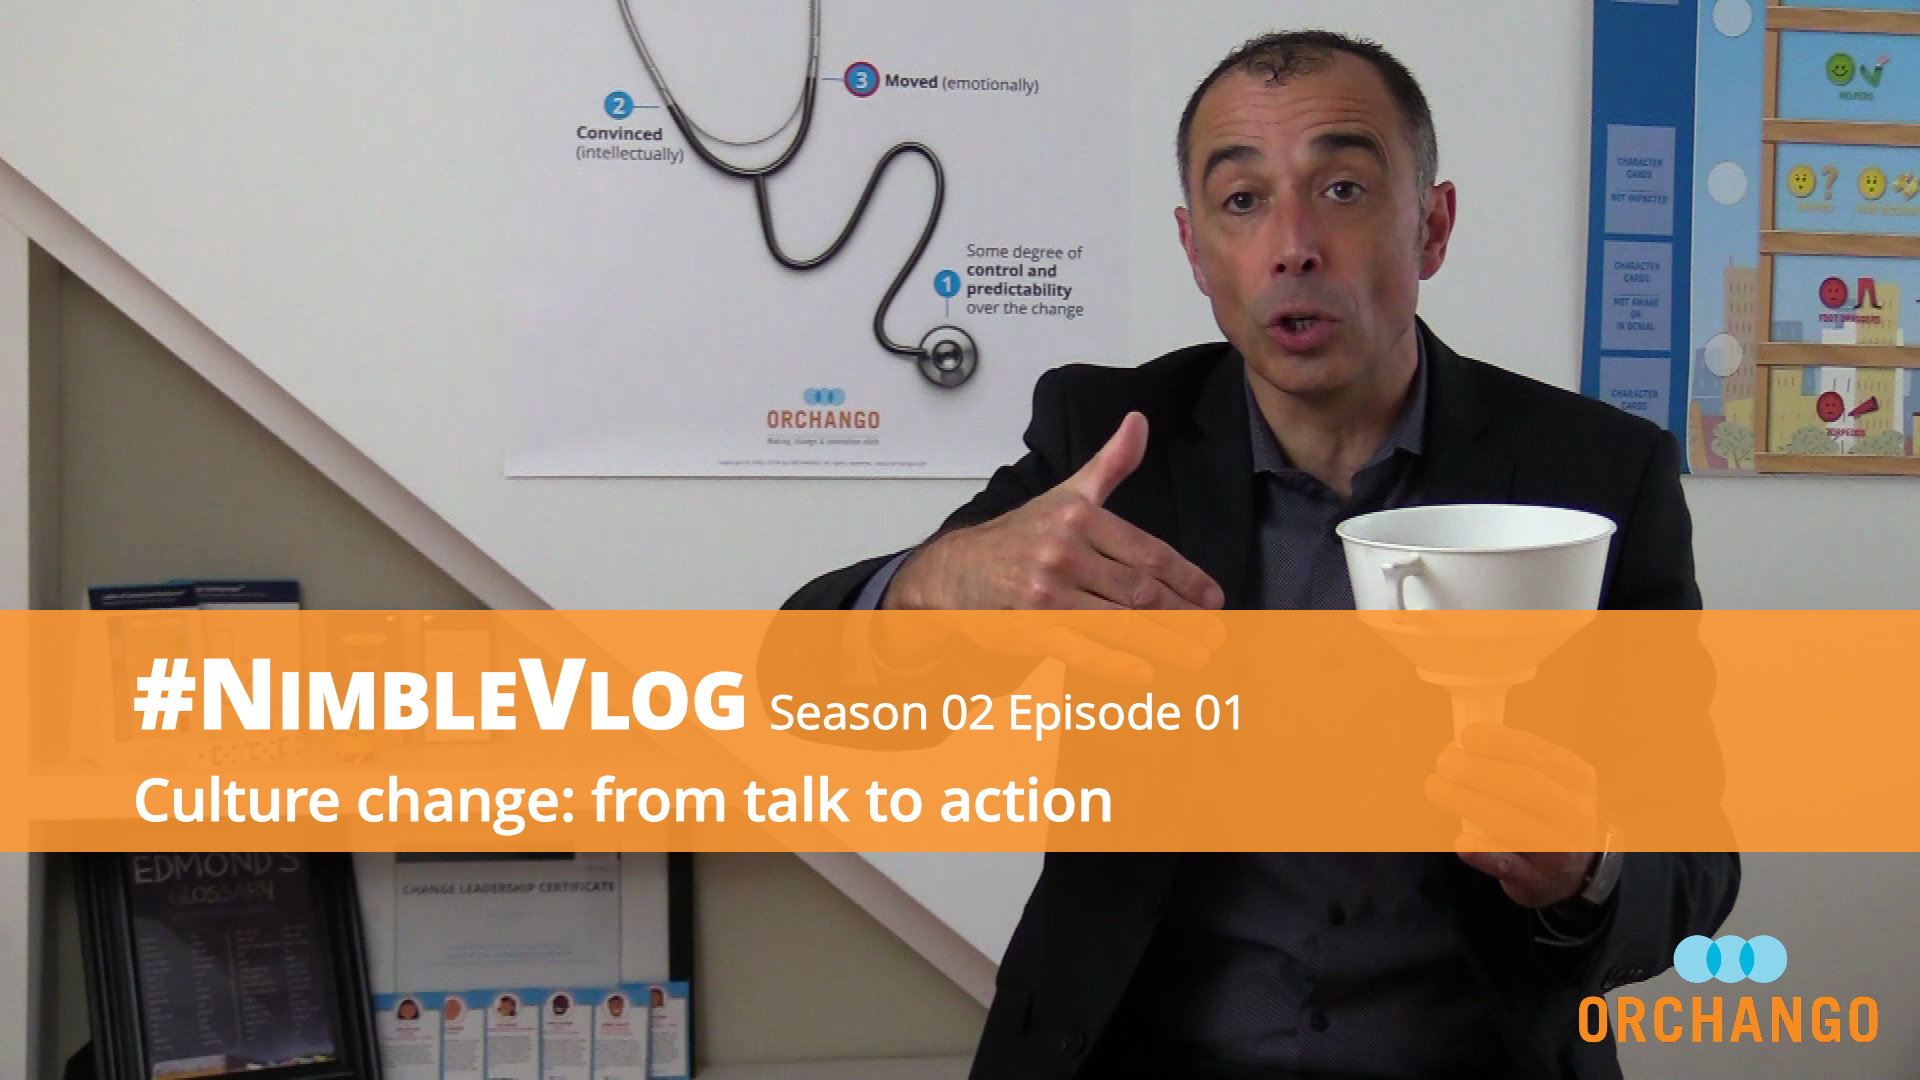 #NimbleVlog S02 E01 — Culture Change: From Talk To Action